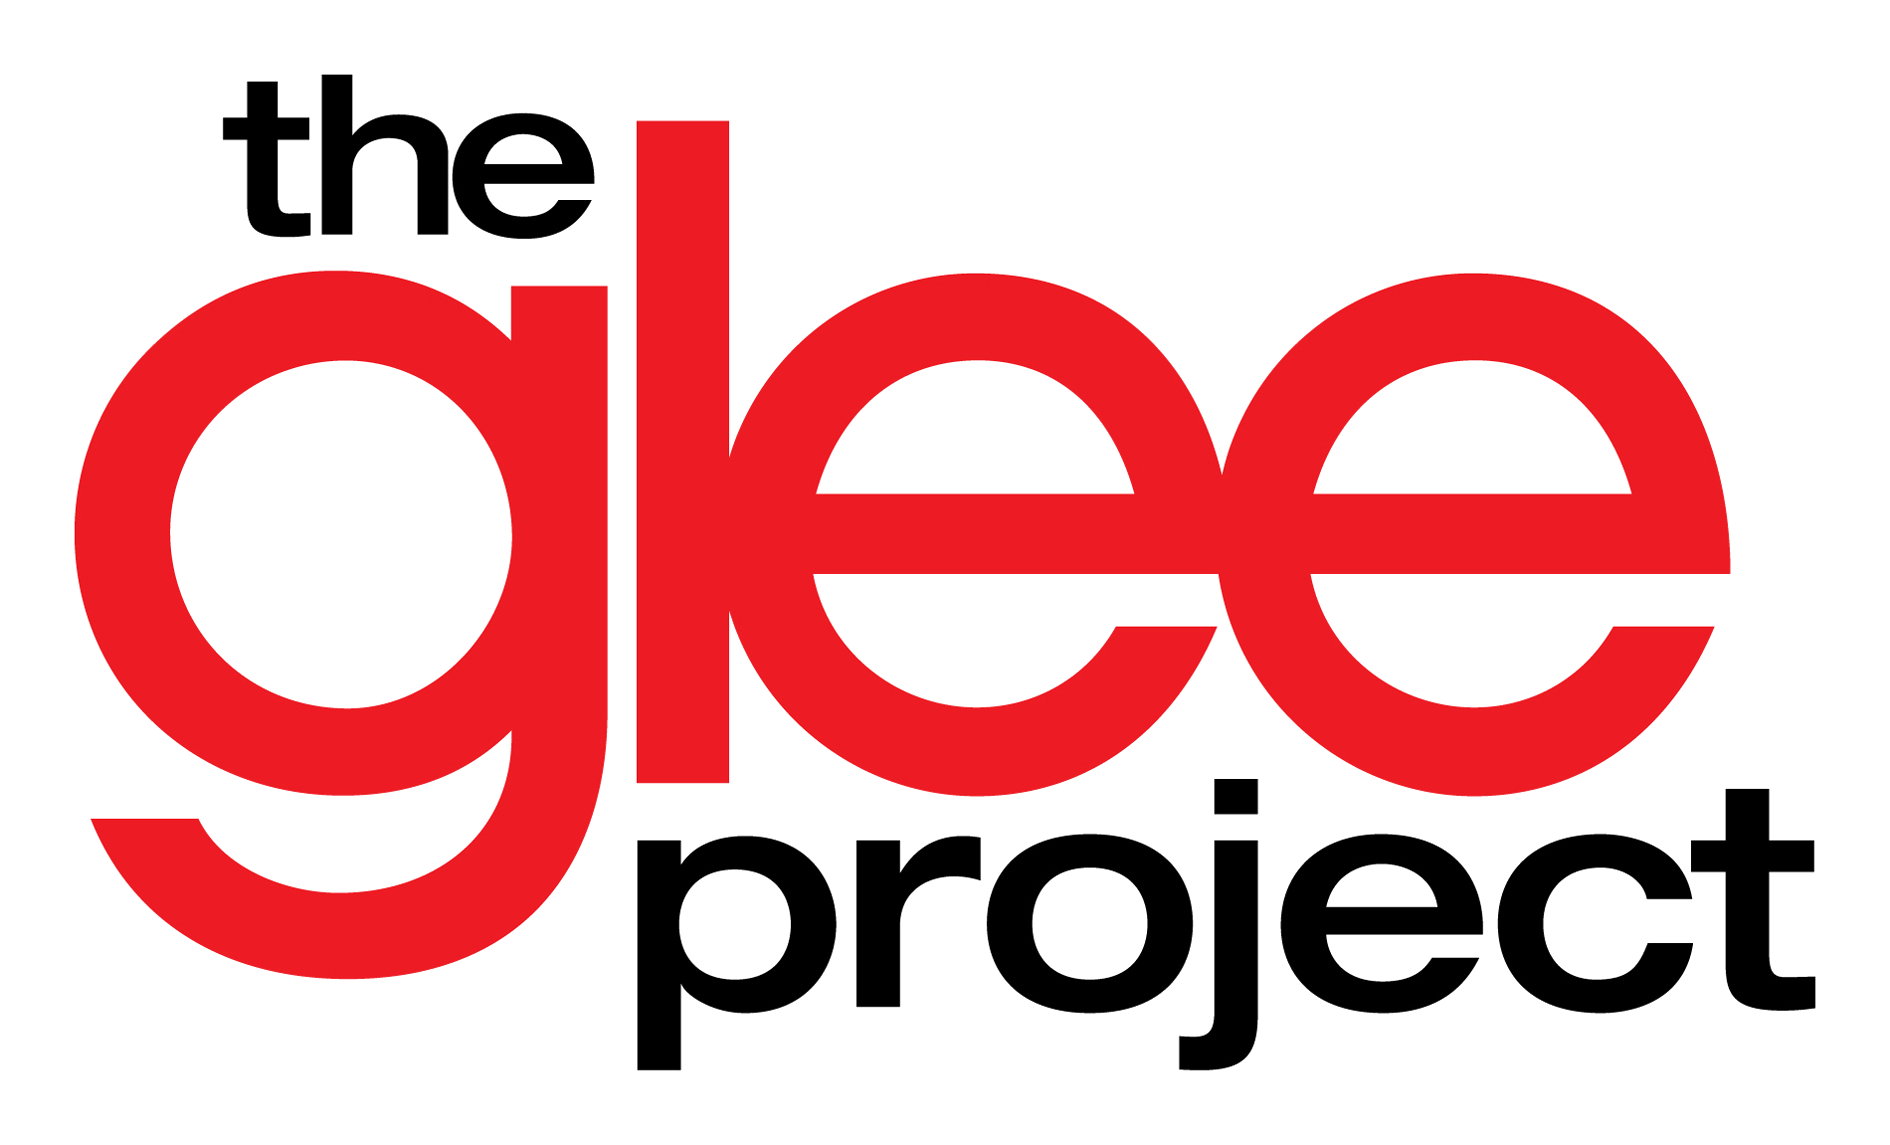 Vector project logo. File the glee png